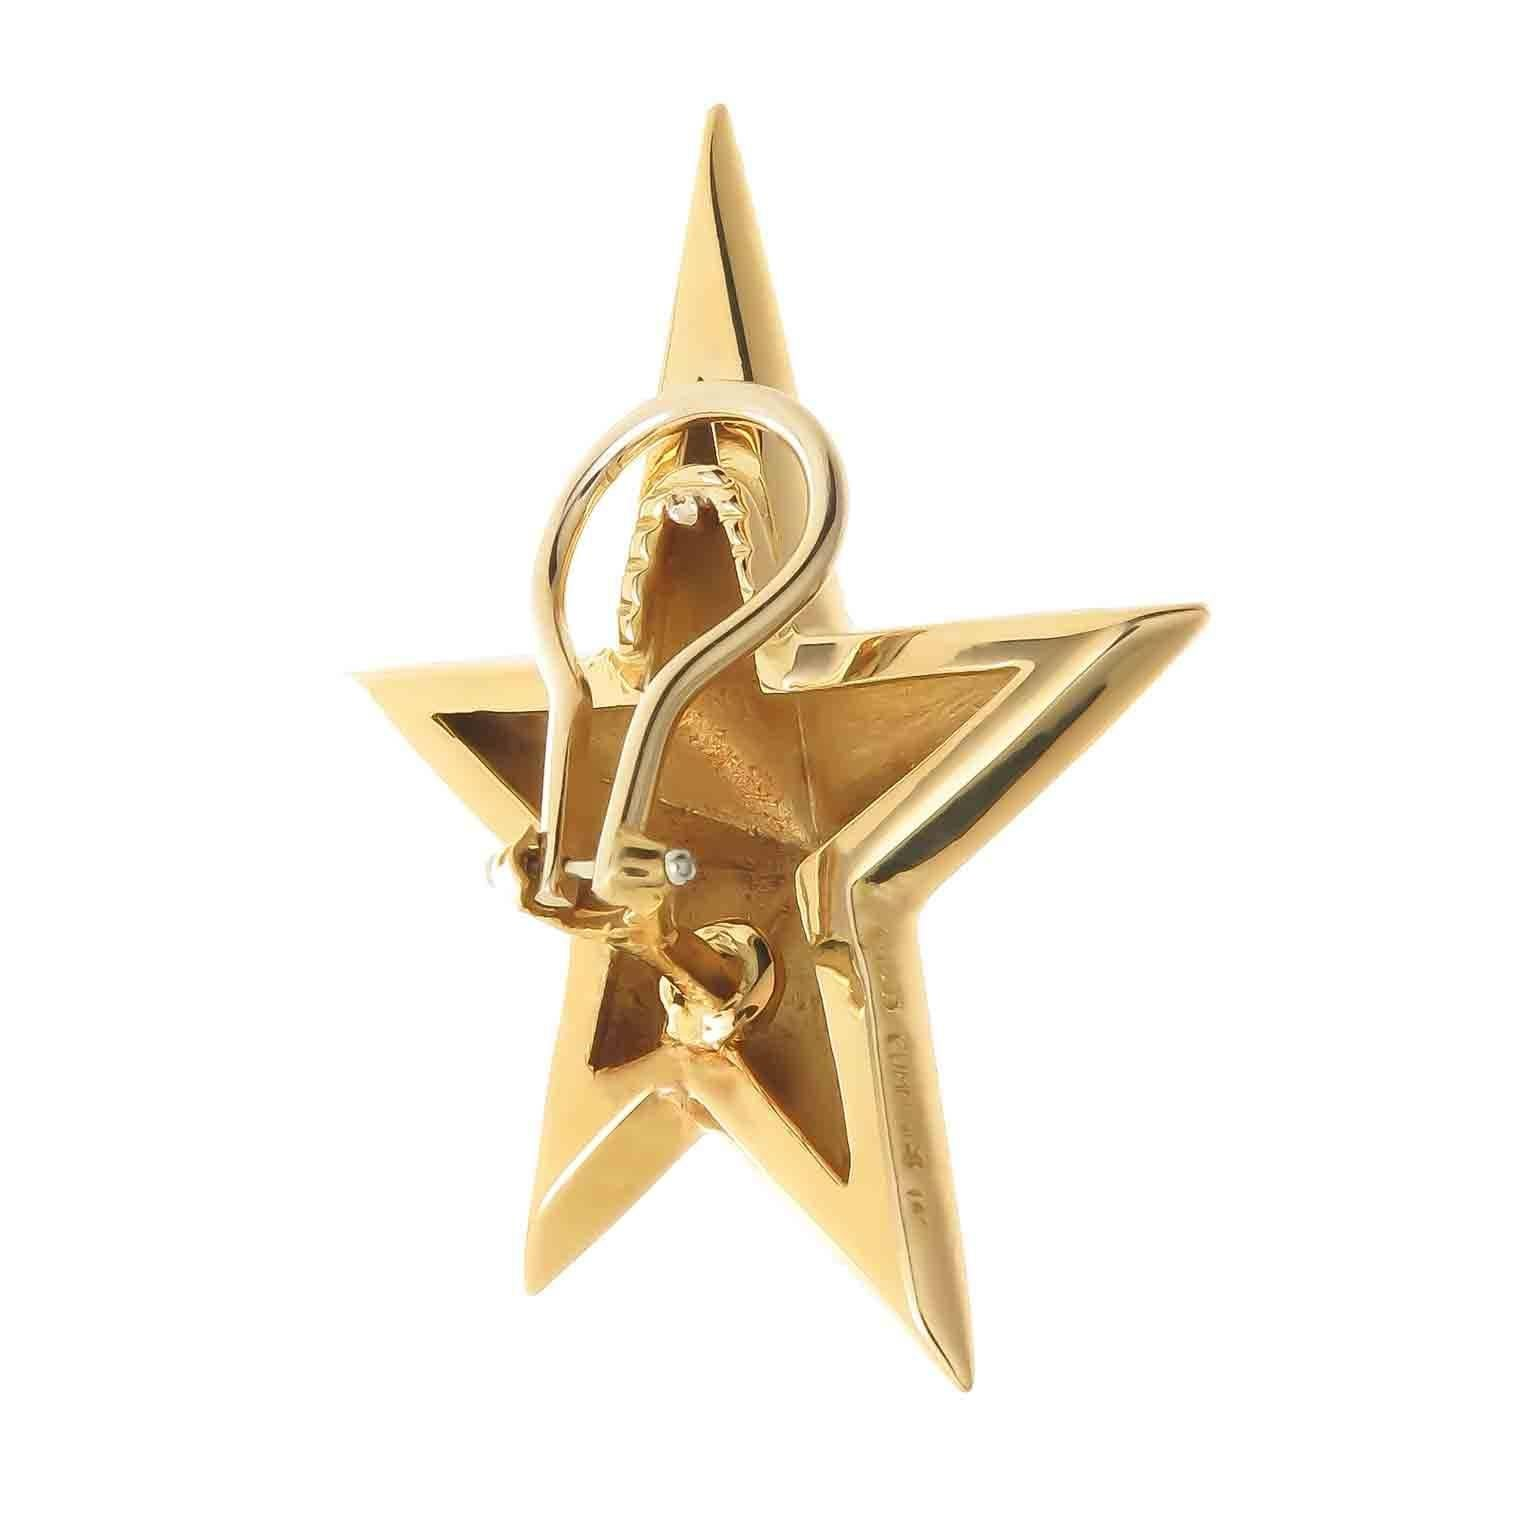 stainless for simplywhispers free pierced nickel star steel jewelry gold hypoallergenic safe allergy earrings flower shaped